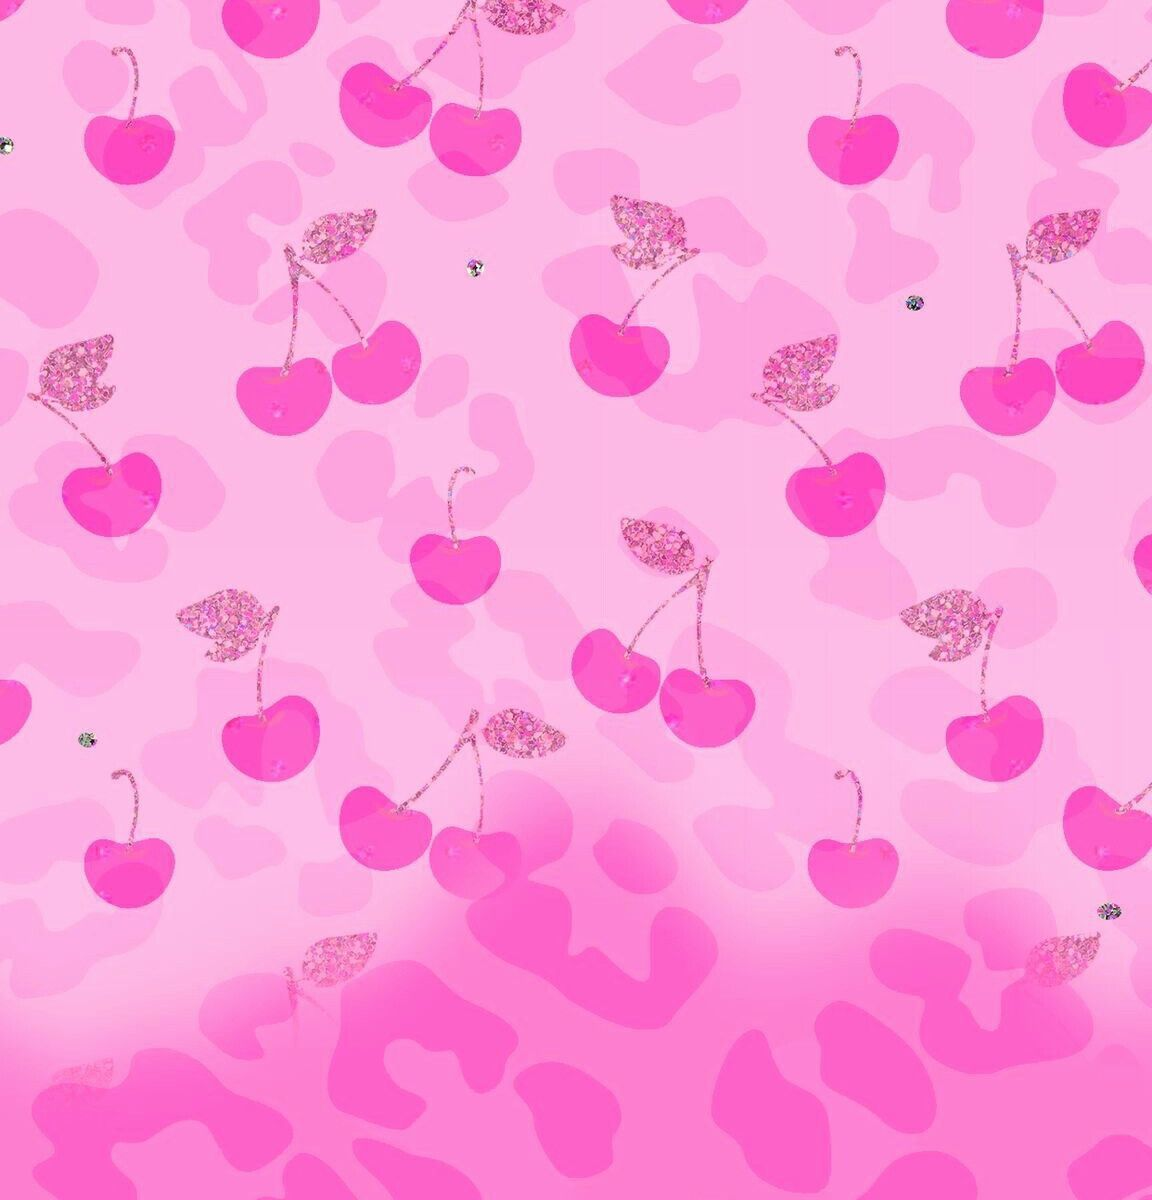 21 Girly Wallpapers Pink Backgrounds Images Pictures   Girly 1152x1200